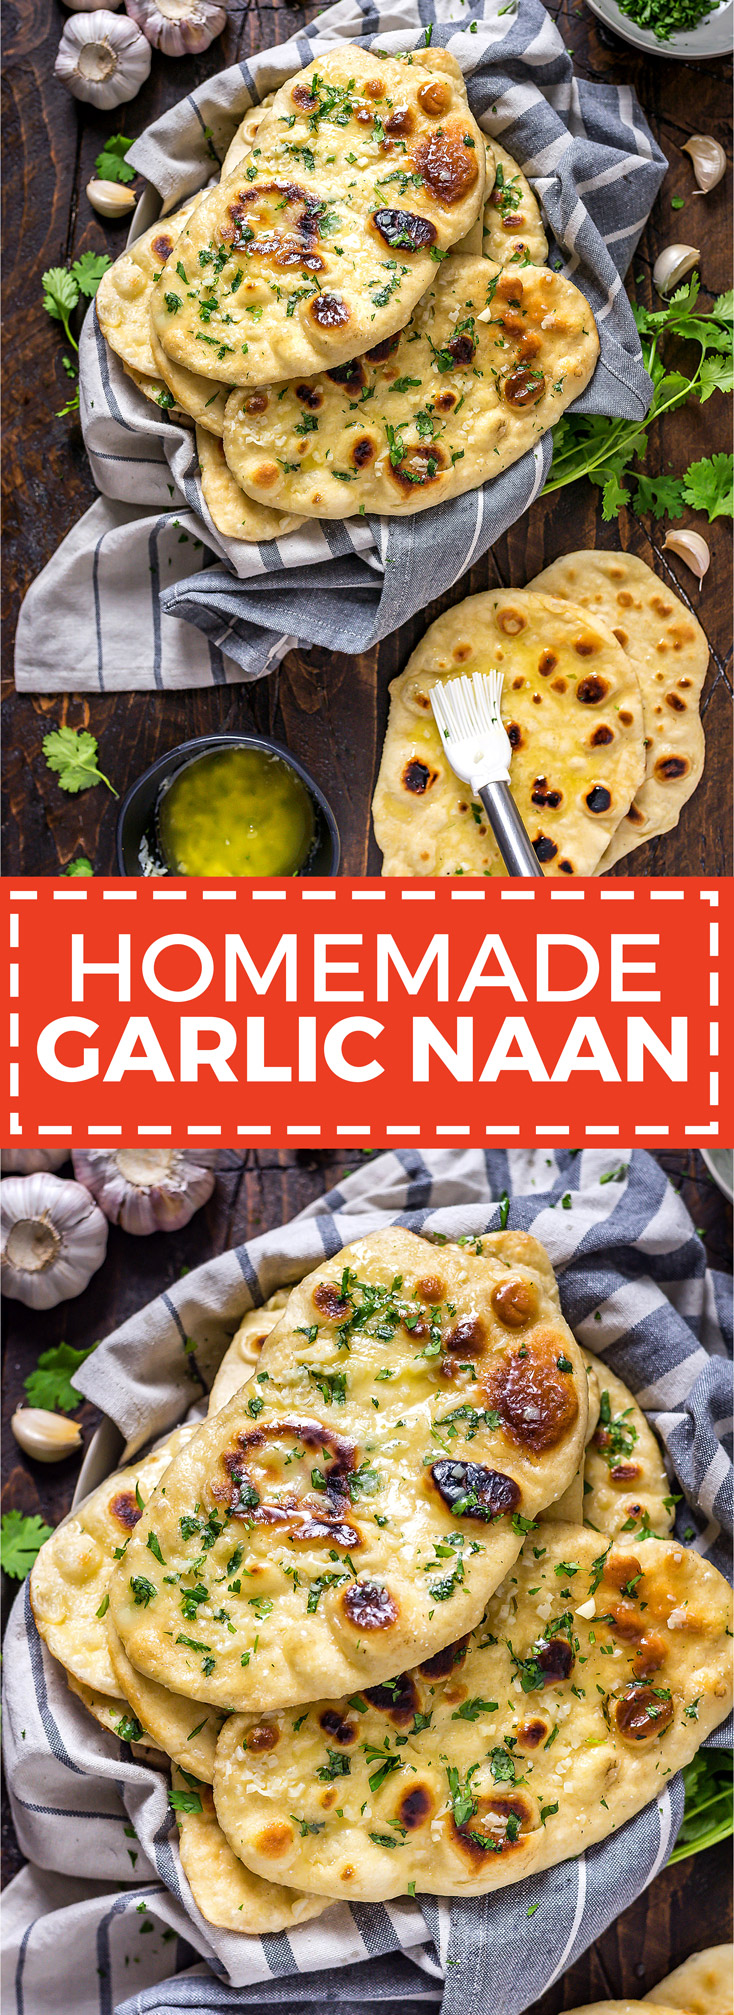 Homemade Garlic Naan Host The Toast